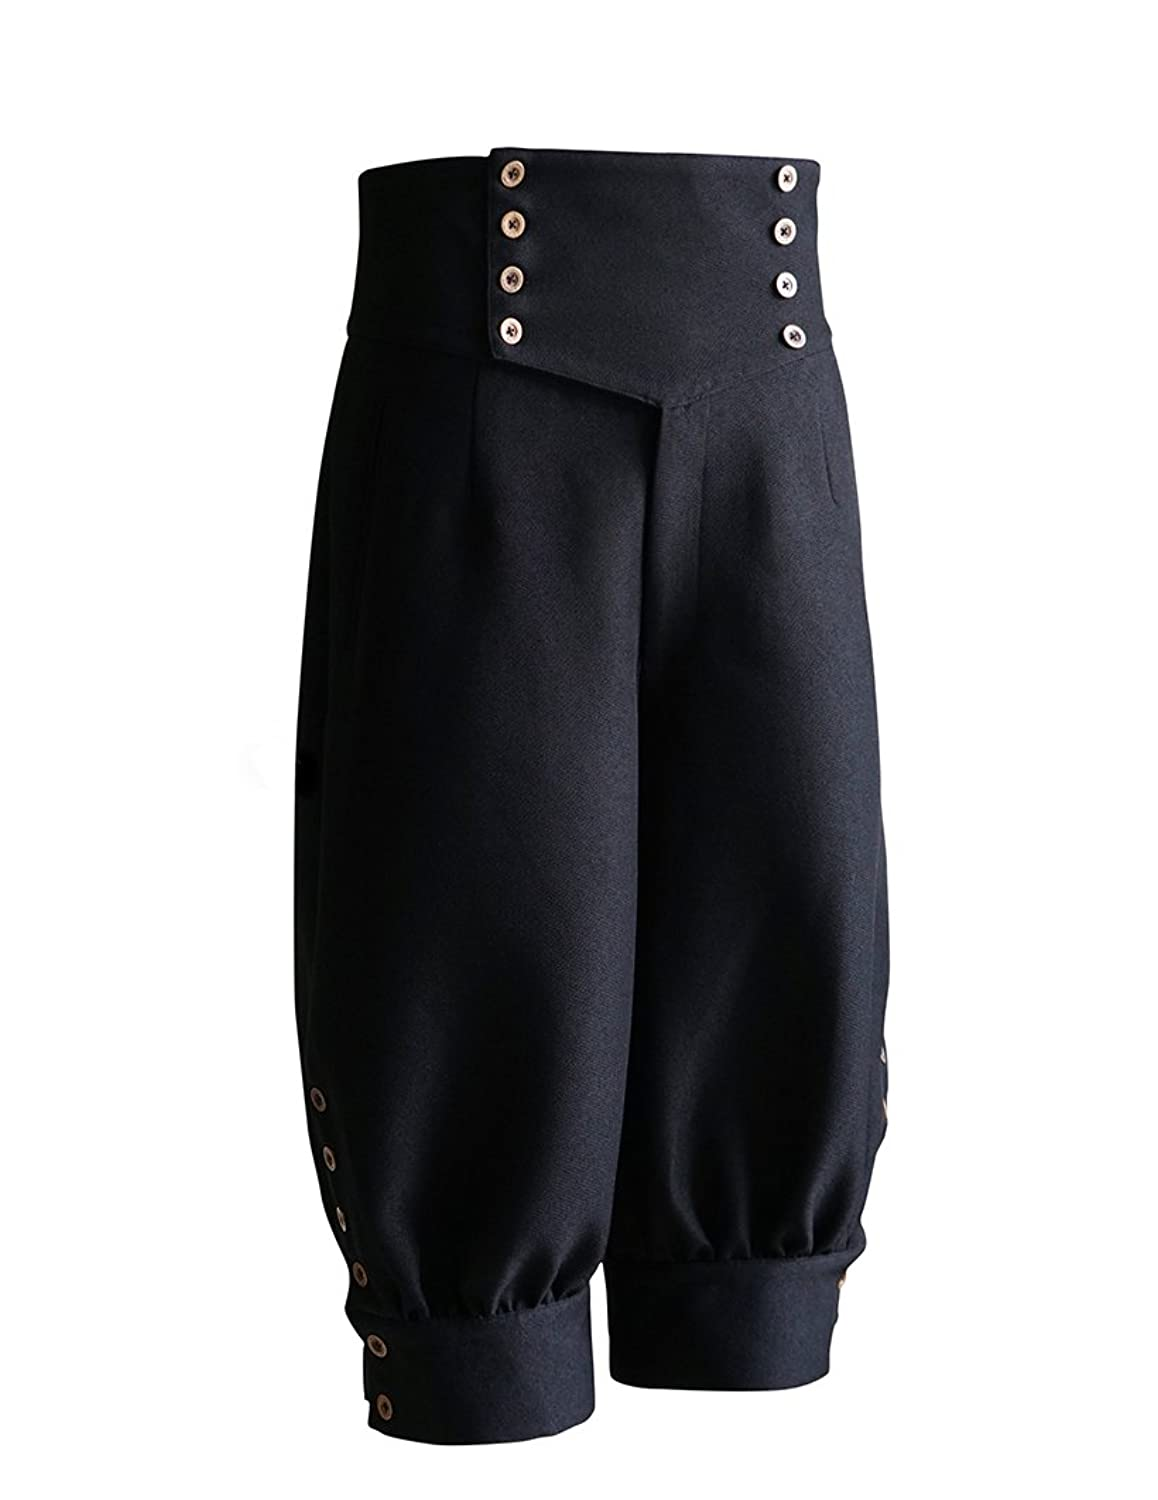 Steampunk Pants Mens Gothic Steampunk High Waist Short Riding Breeches $102.00 AT vintagedancer.com